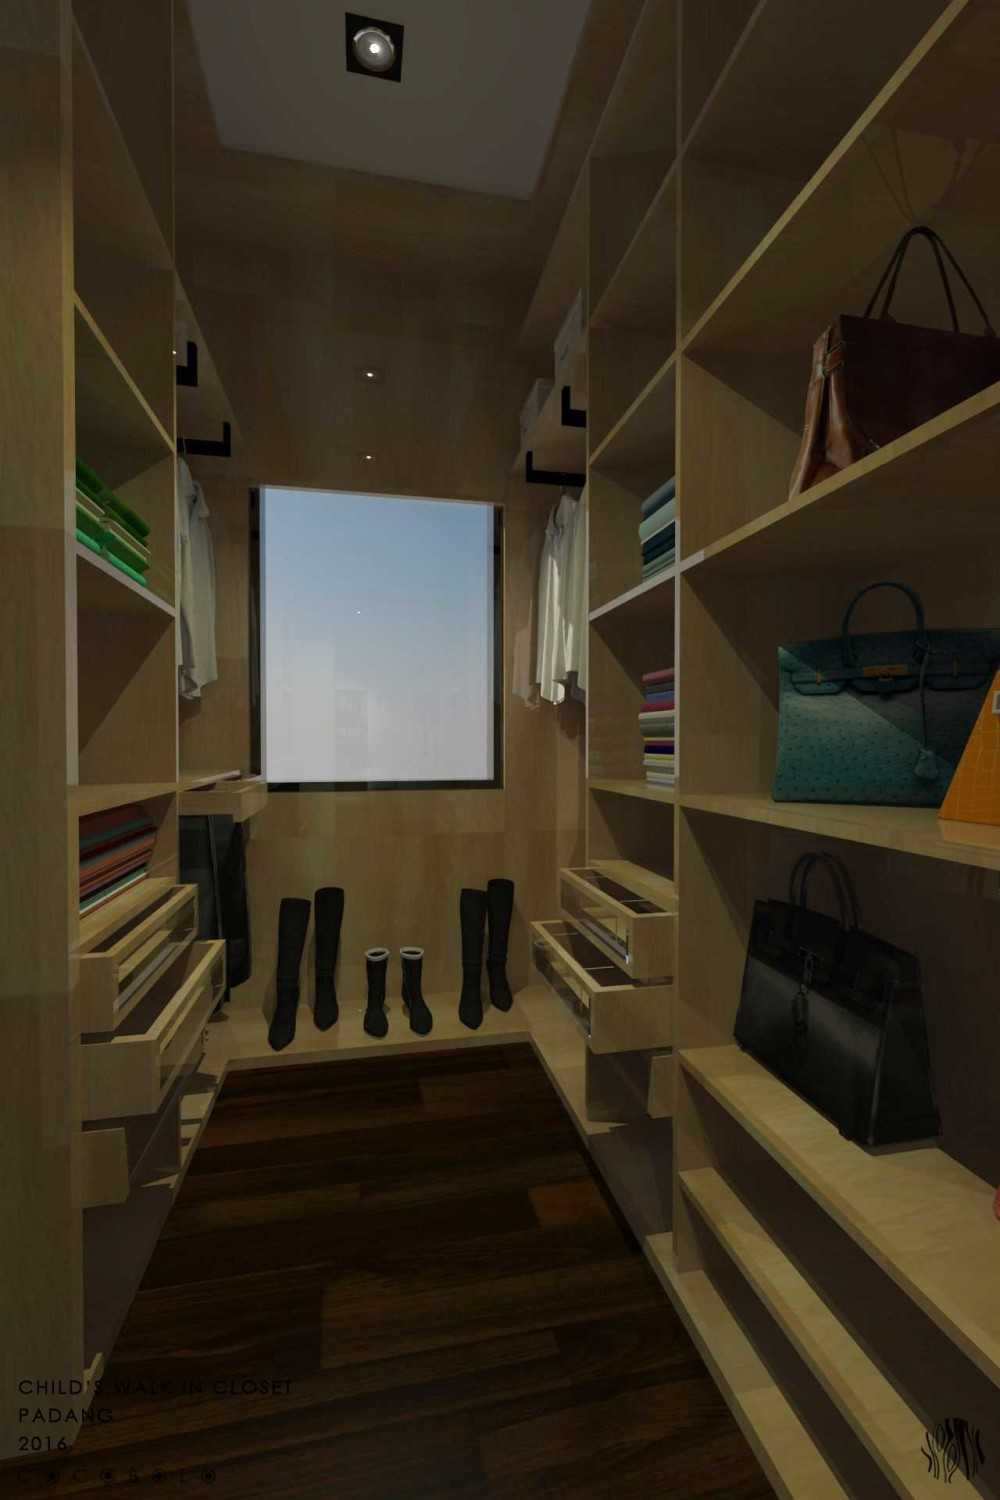 Cocobolo Studio D House Padang, Indonesia Padang, Indonesia Walk-In Closet Minimalis,modern 18266